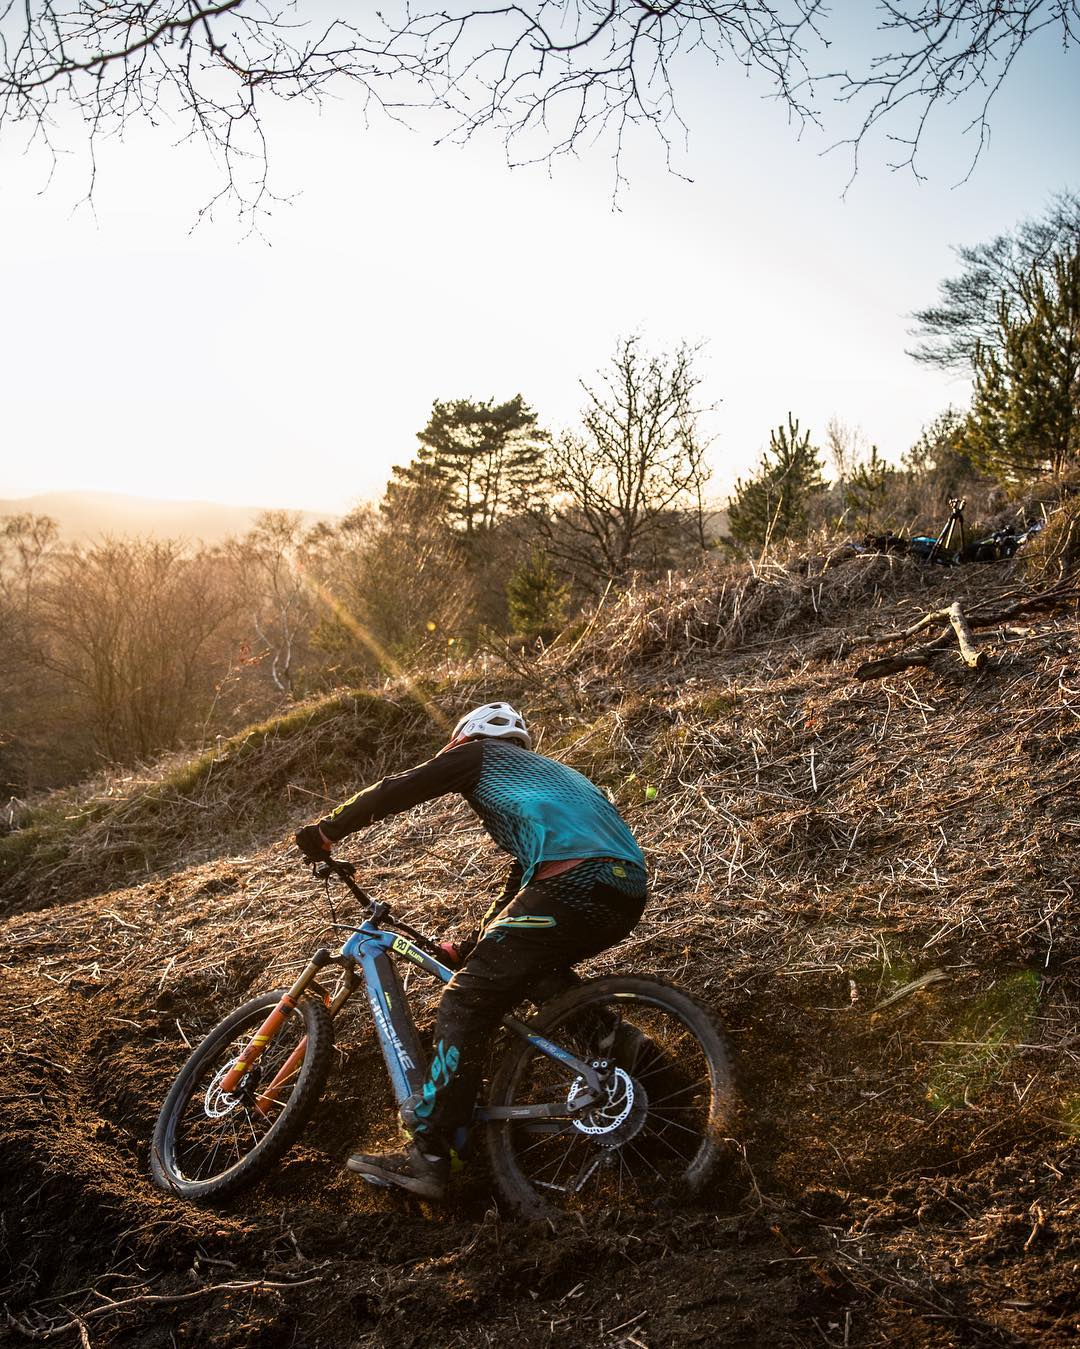 Sam Pilgrim took a well deserved break from the hard graft of being a pro rider so he could live the dream for a minute behind the lens as a pro photographer and shoot some photos of me. After this it was straight back to work. 📷 @sampilgrim #ride100percent #emtb #haibike